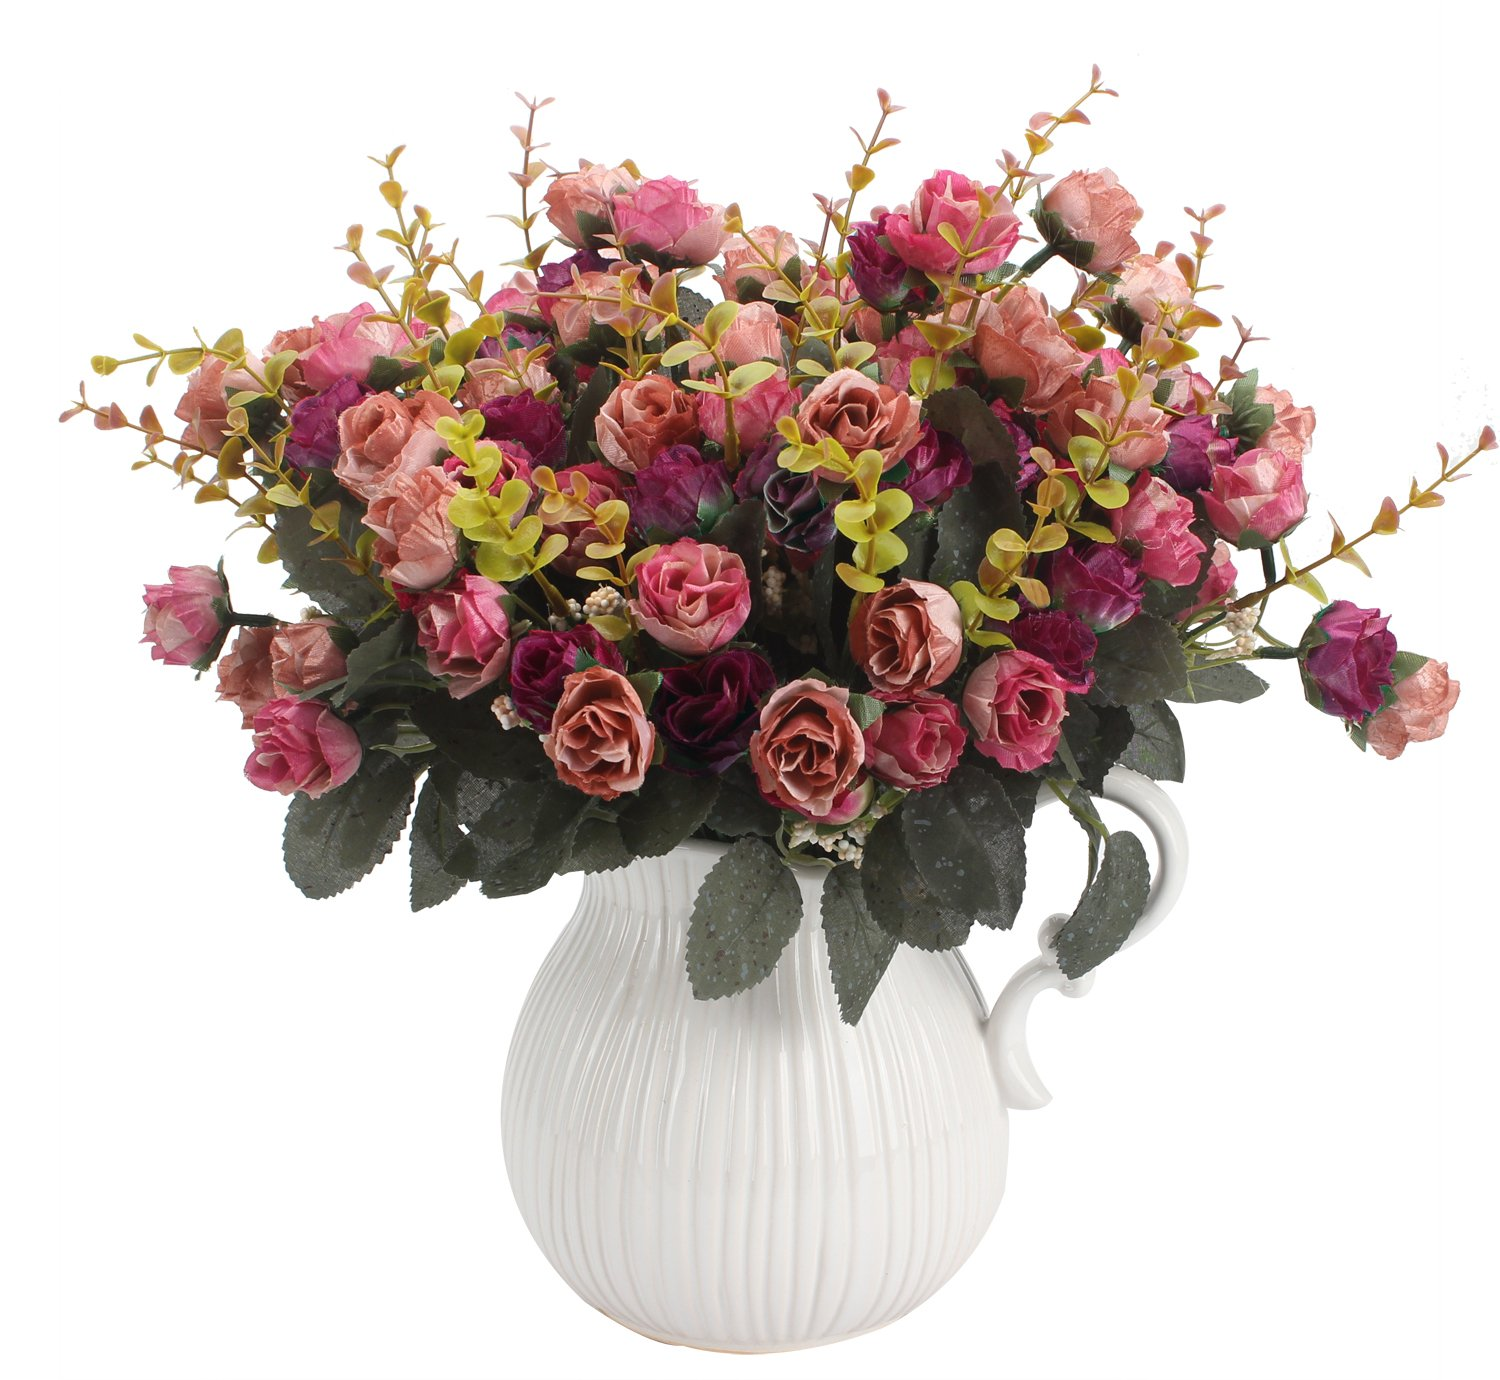 Duovlo 7 Branch 21 Heads Artificial Flowers Bouquet Mini Rose Wedding Home Office Decor,Pack of ...